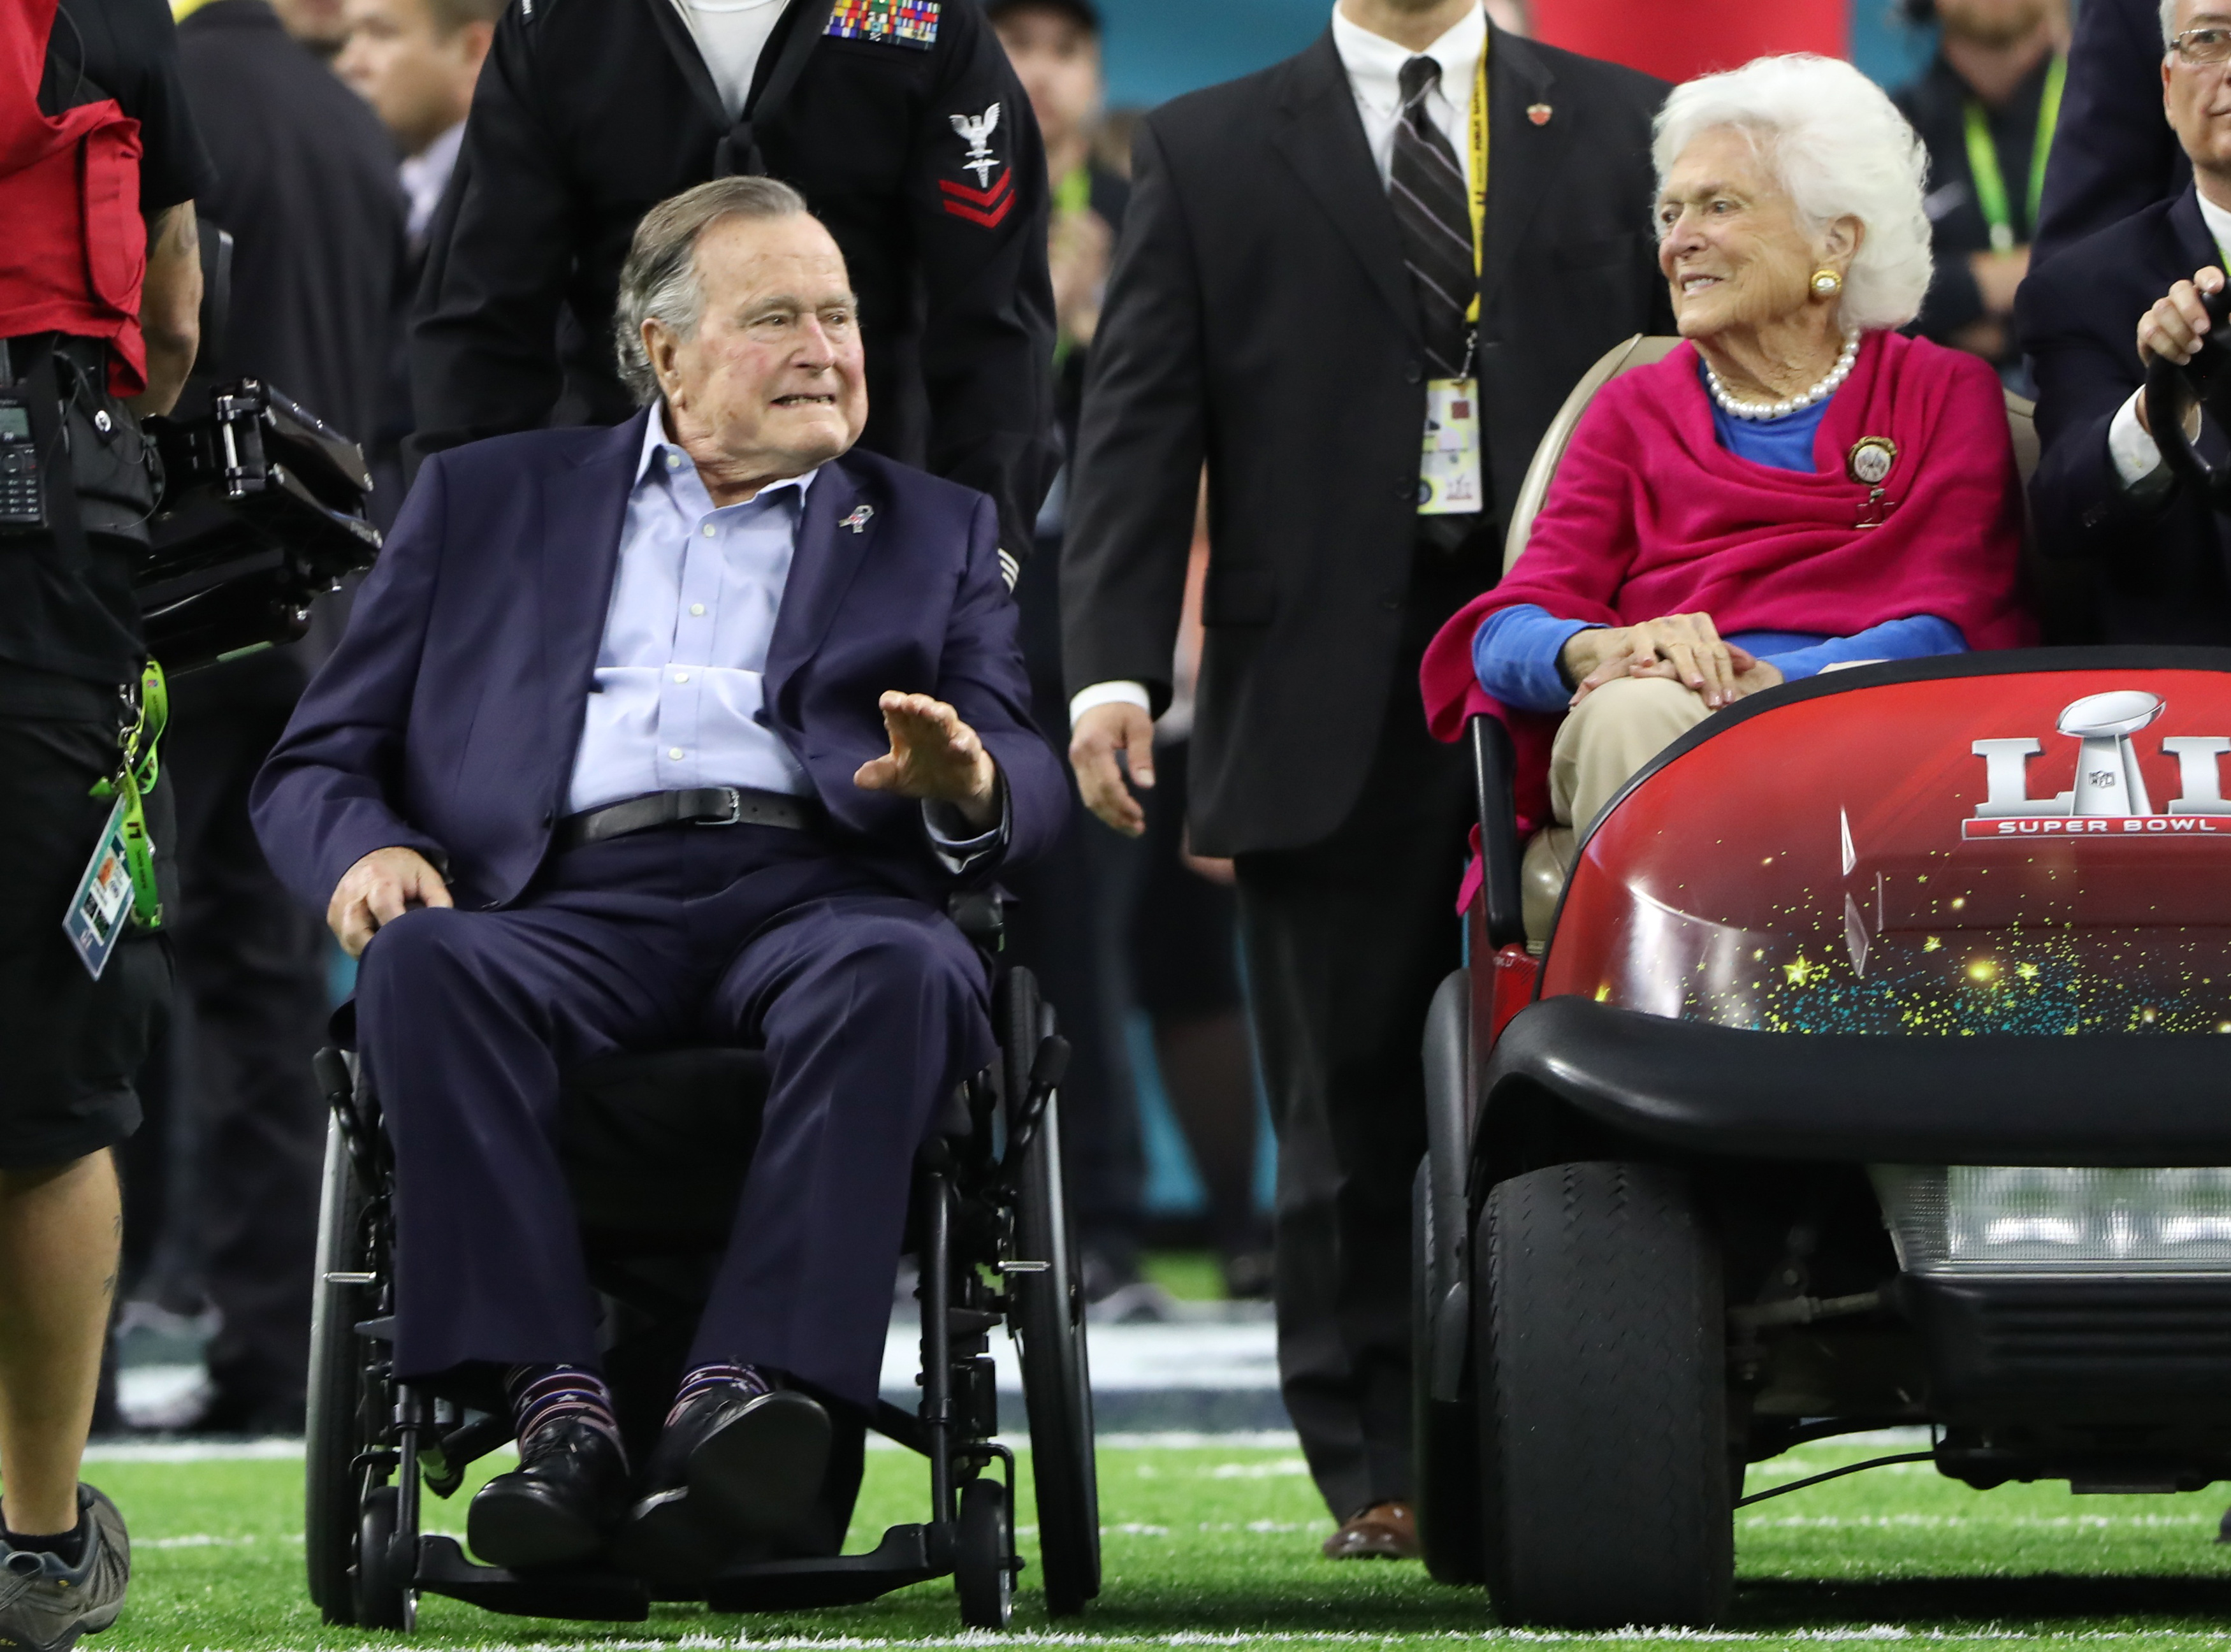 Sixth Woman Comes Forward To Accuse George HW Bush Of Groping